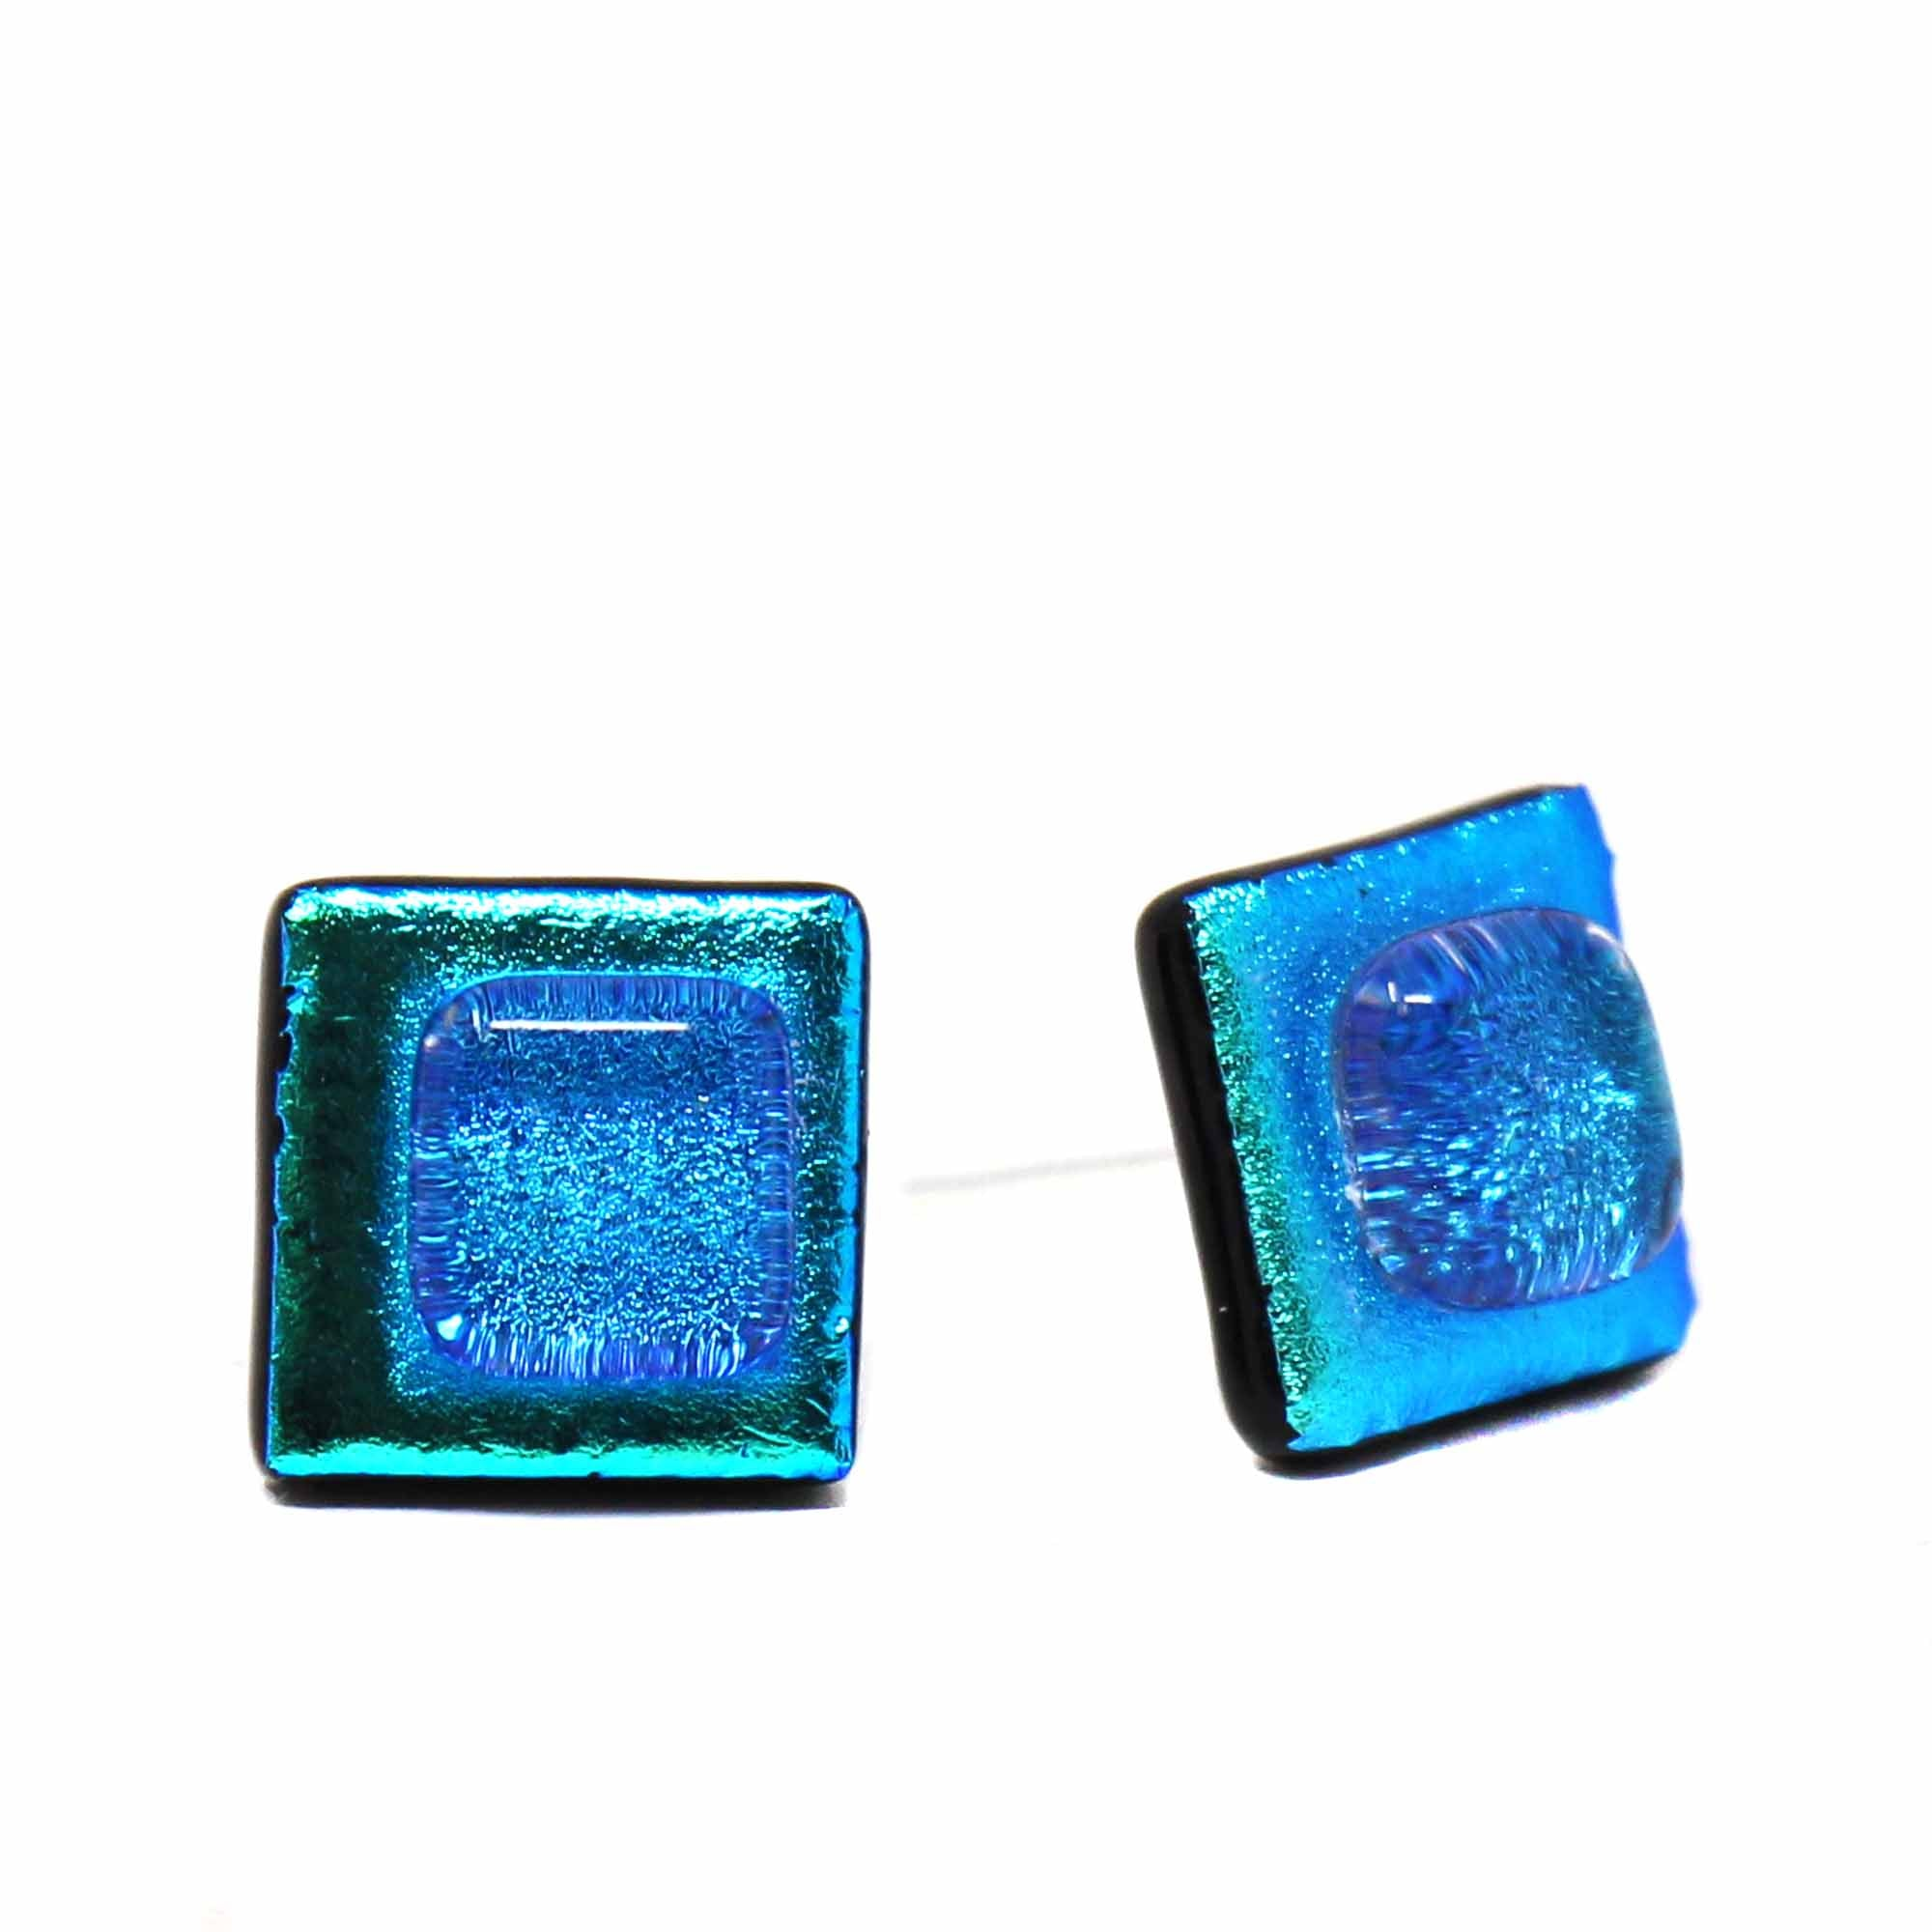 Square Glass Stud Earrings, Turquoise & Teal - Pack of 3